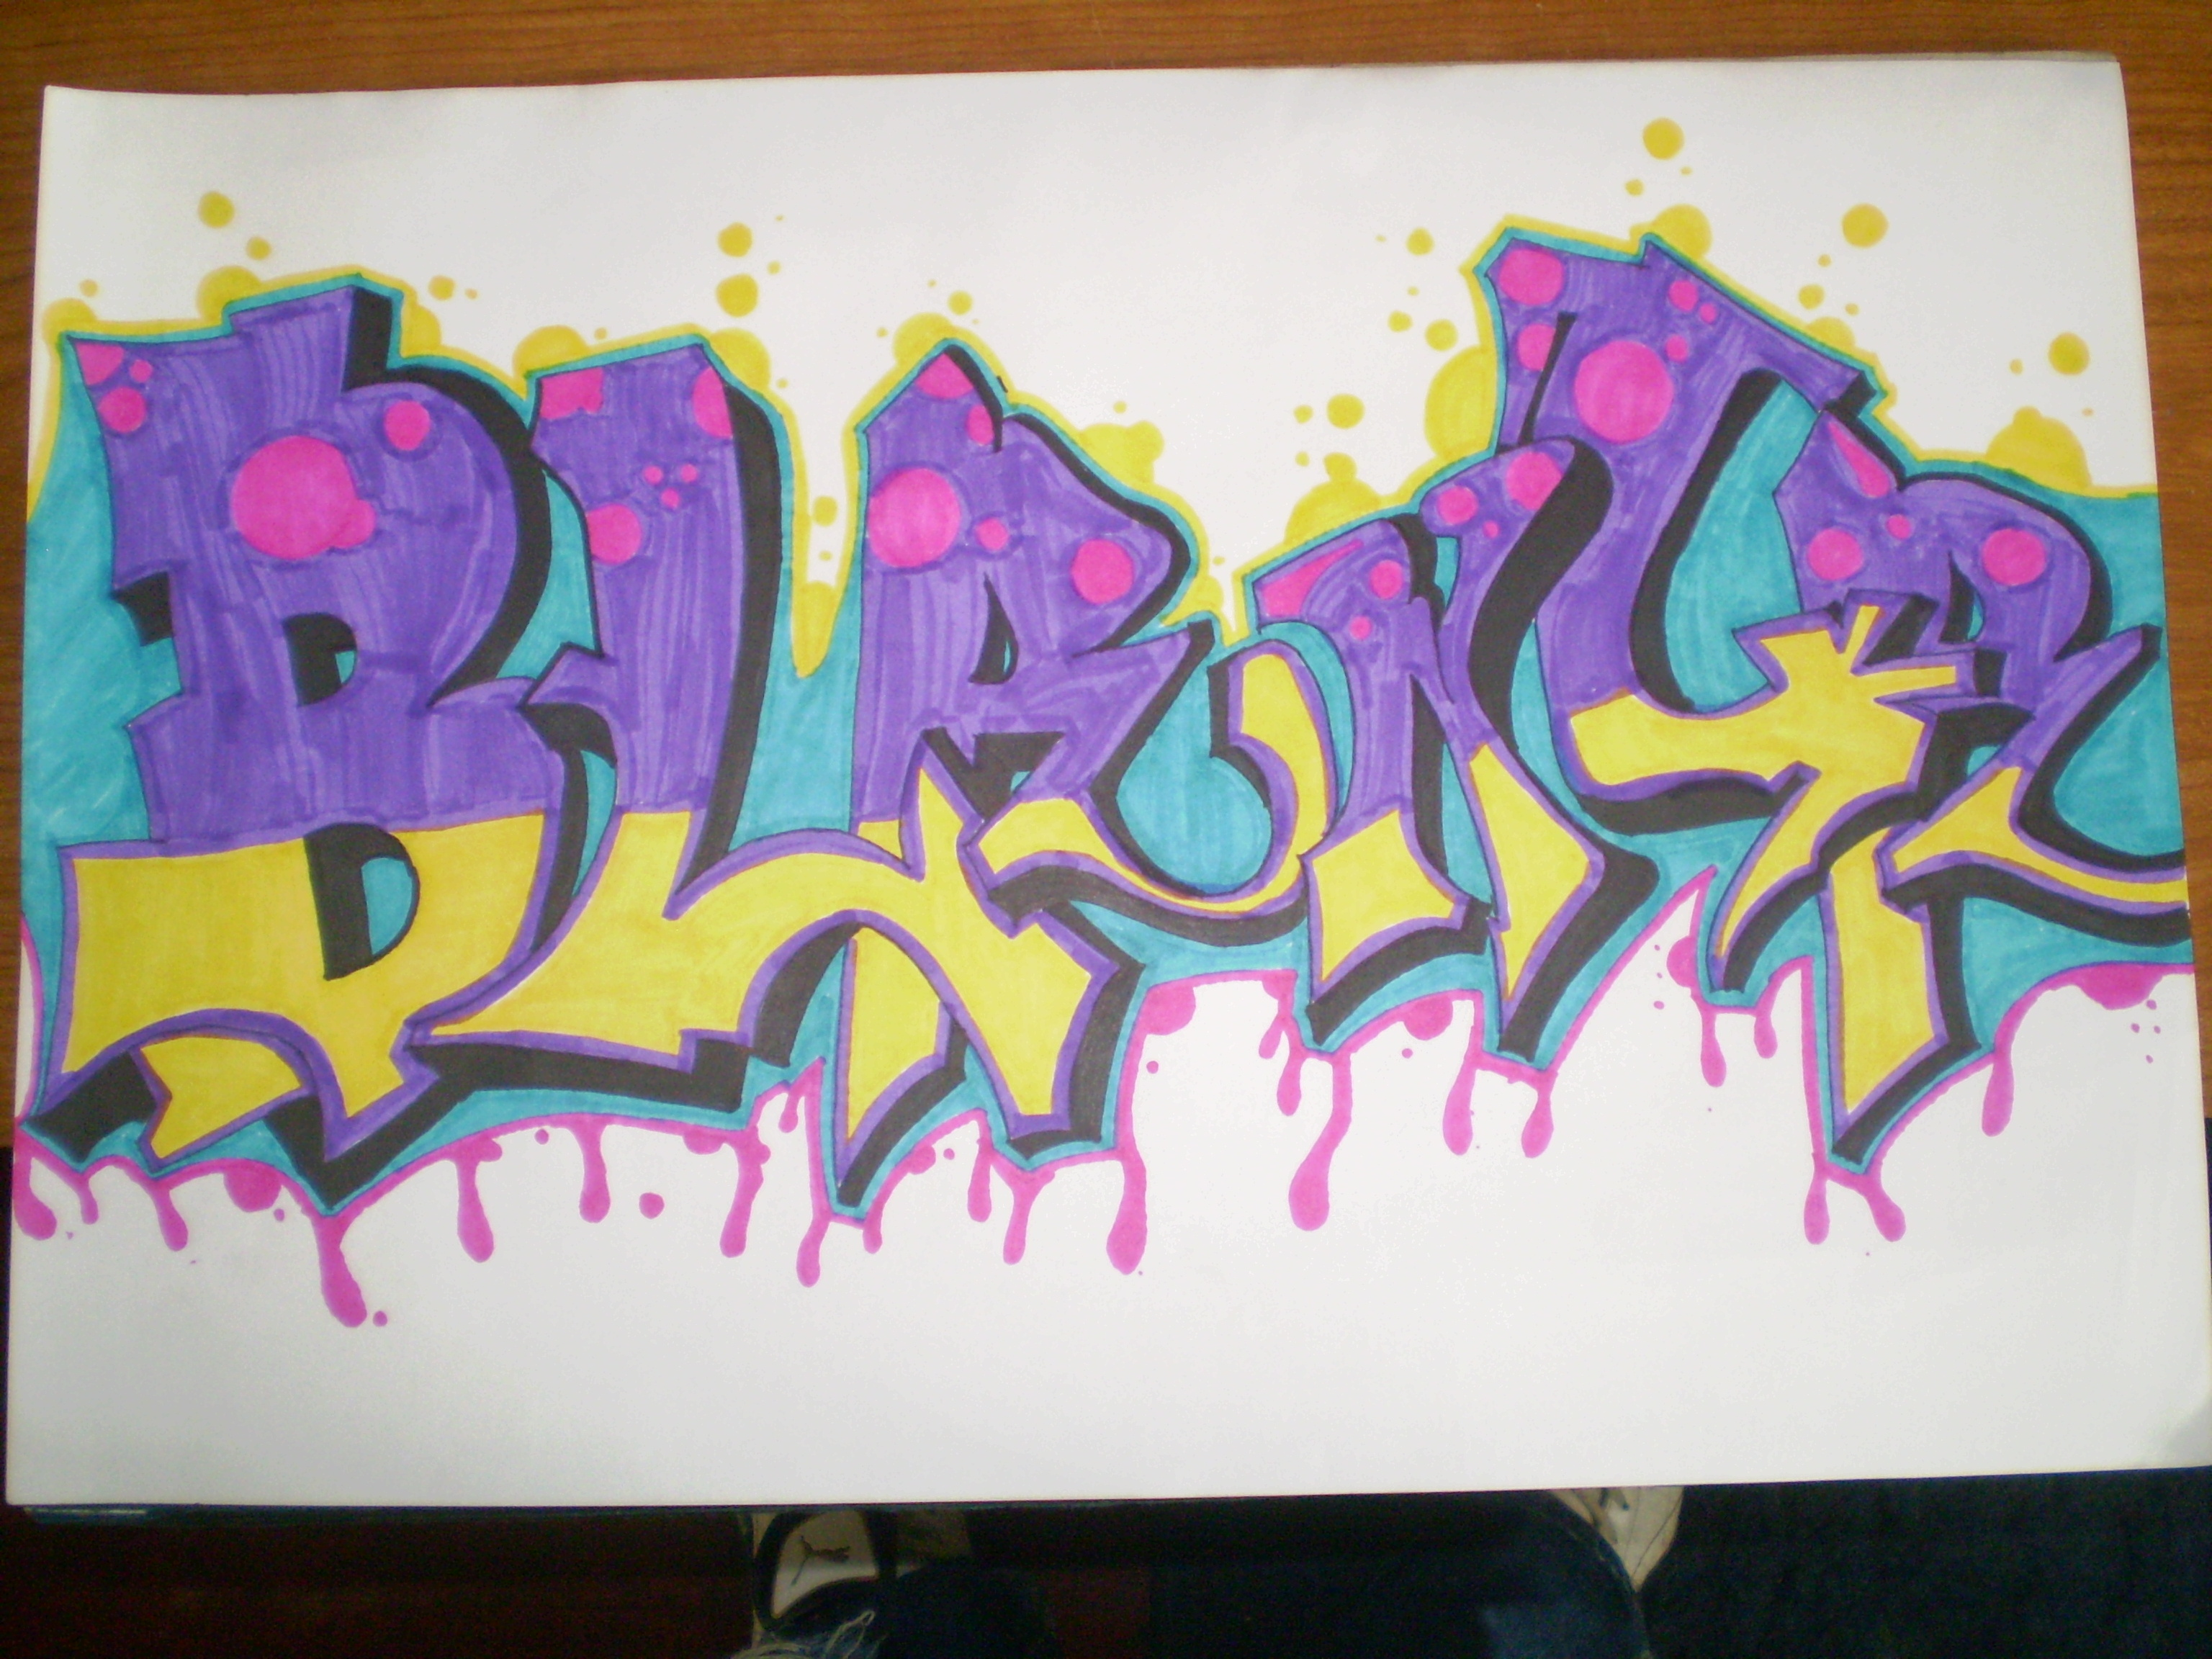 graffiti name blanca by graffart16nando on deviantART